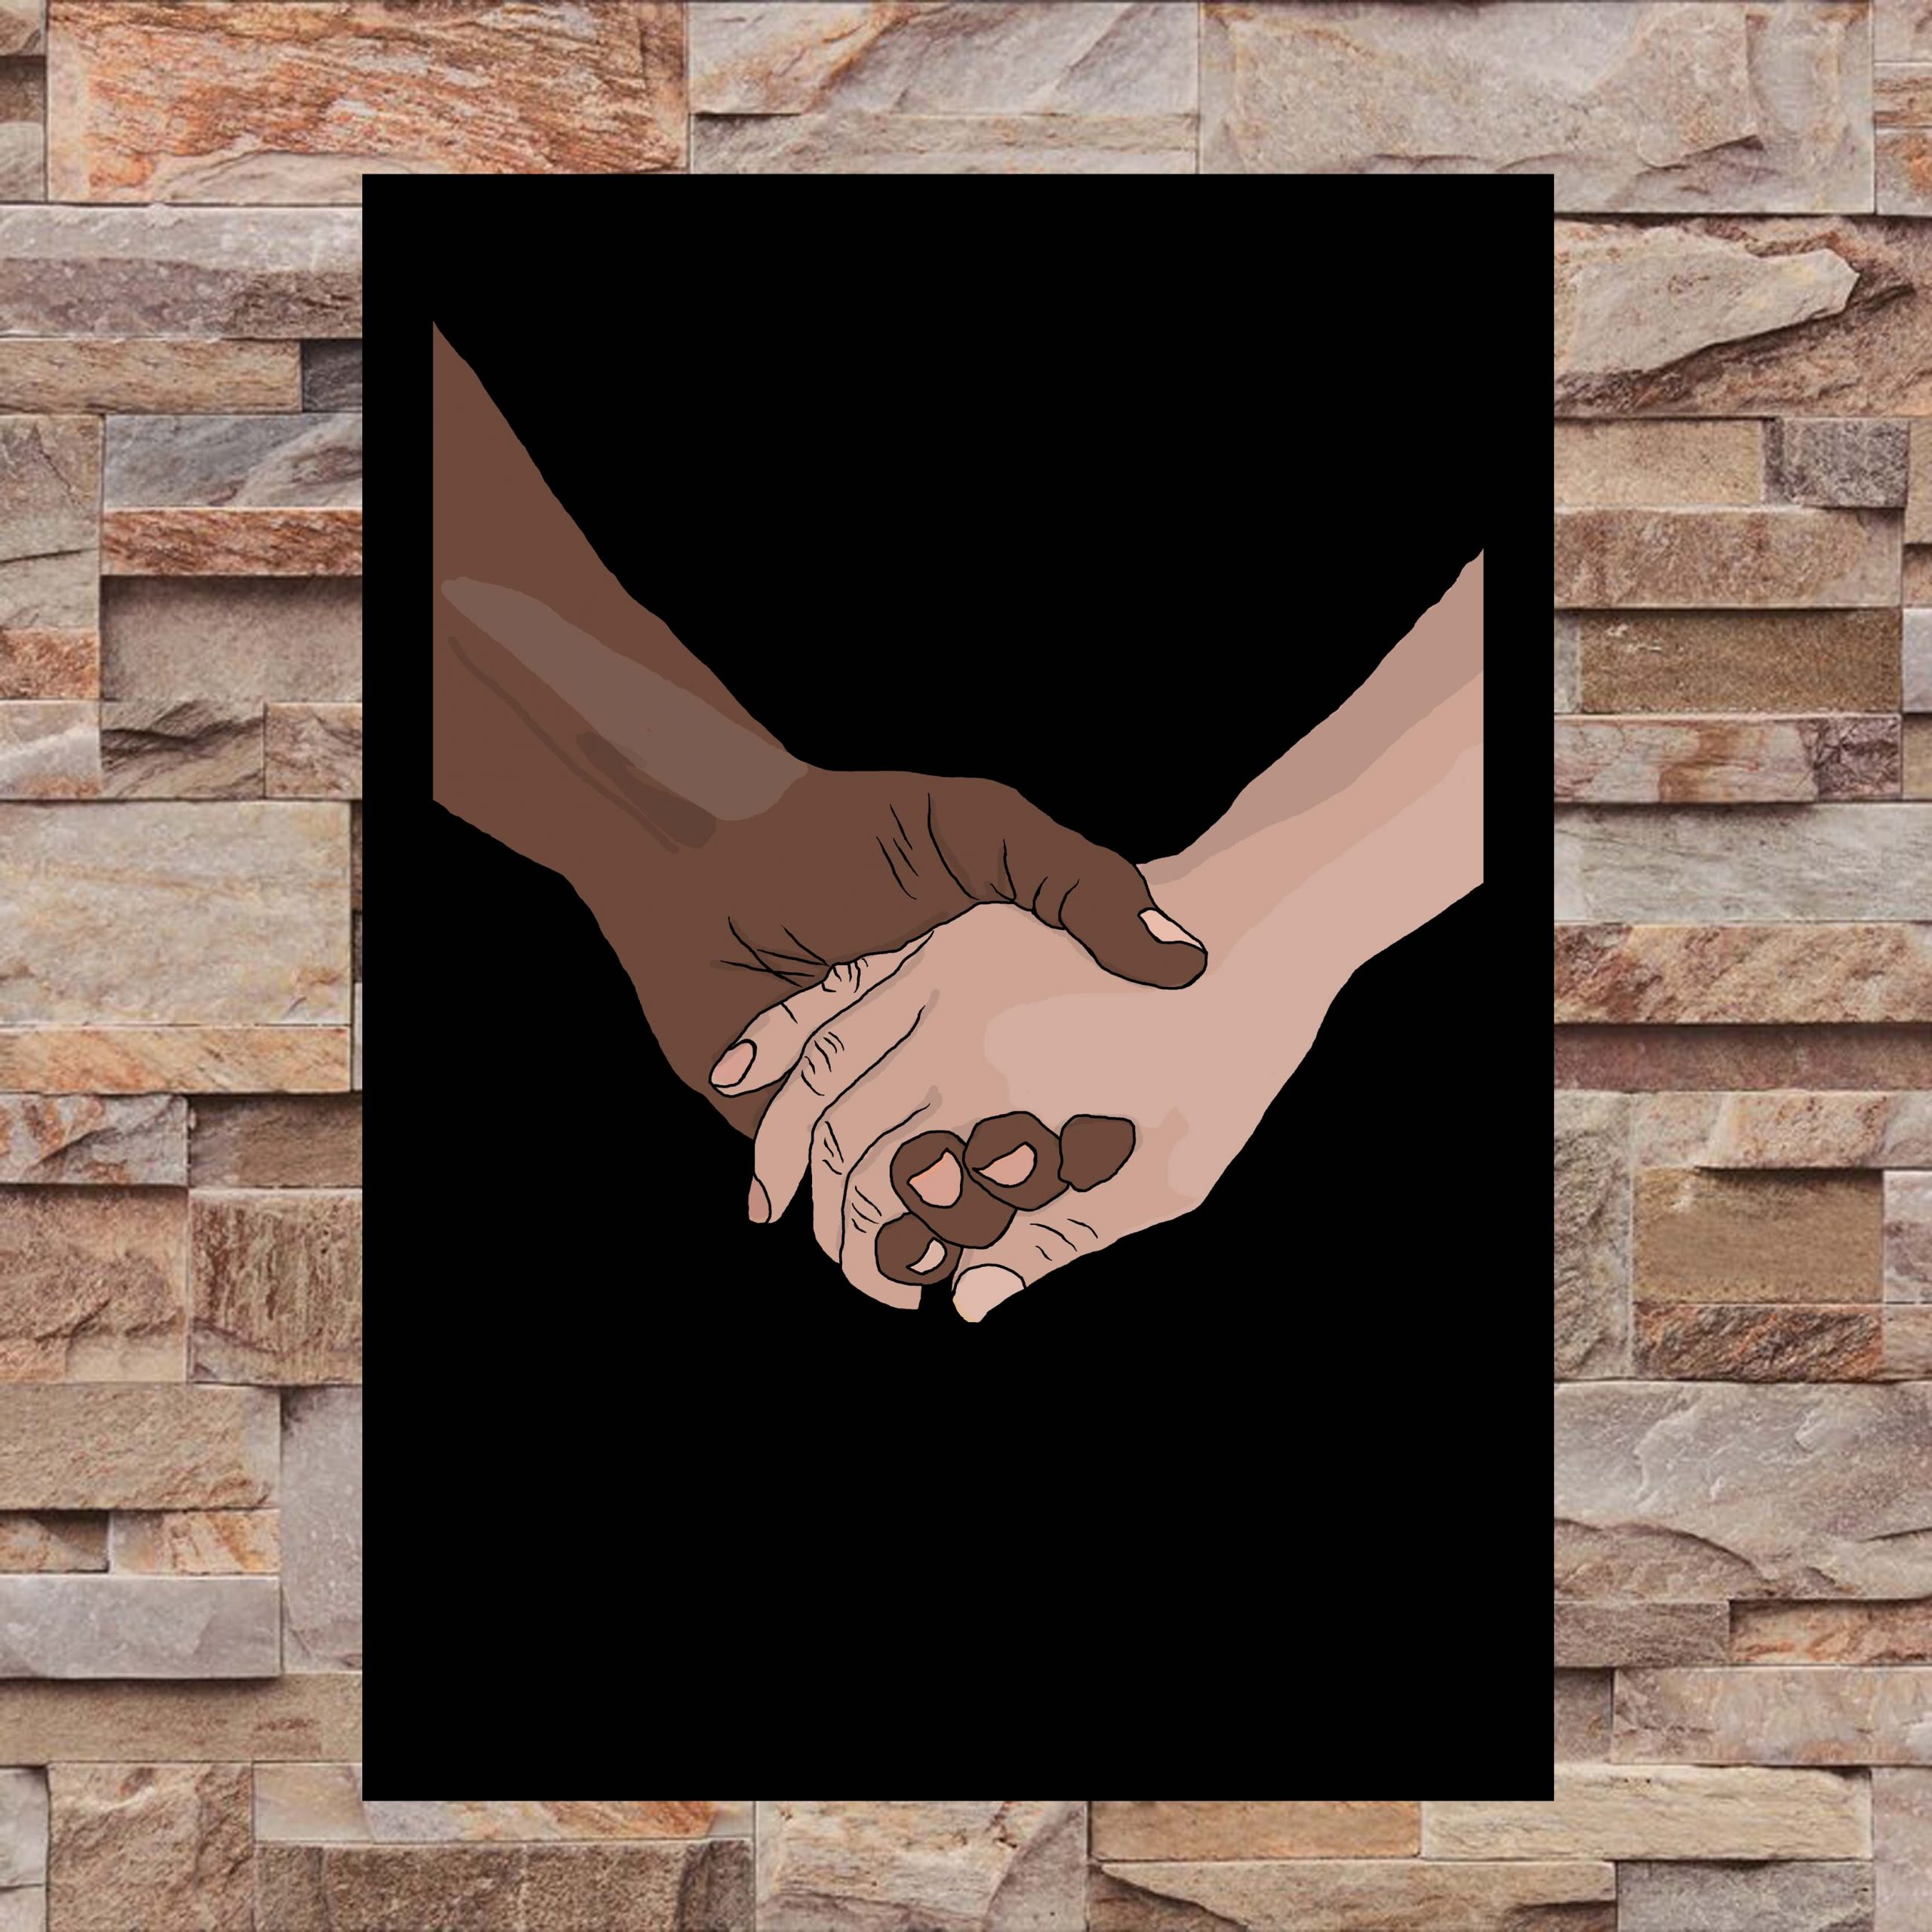 Oneness - Two Hands Holding - Wall Art Print - On Wall - MaadWeb